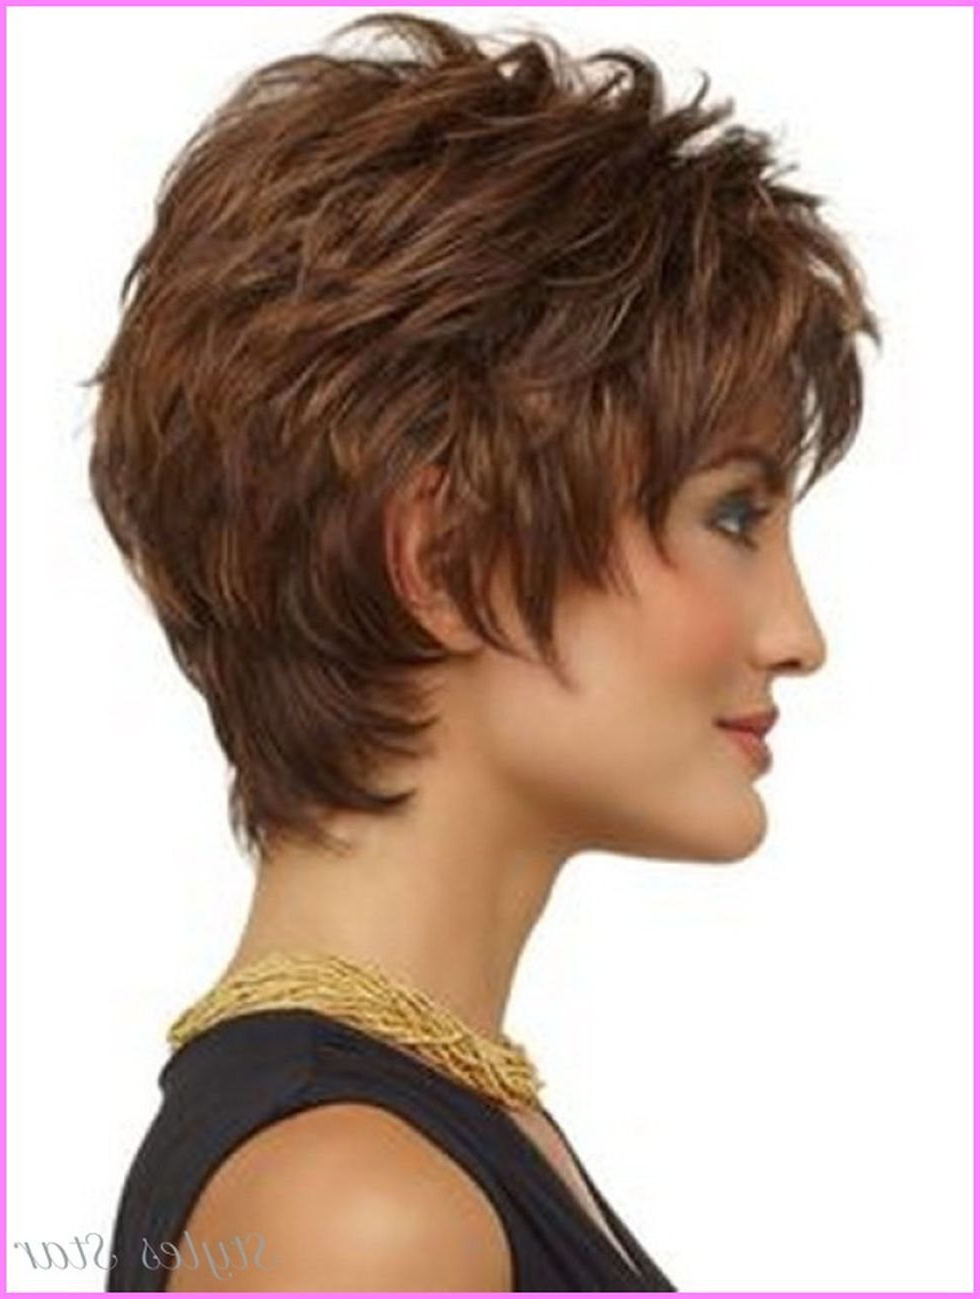 Best Of Wedge Haircuts For Women Pertaining To Wedge Short Haircuts (View 7 of 25)